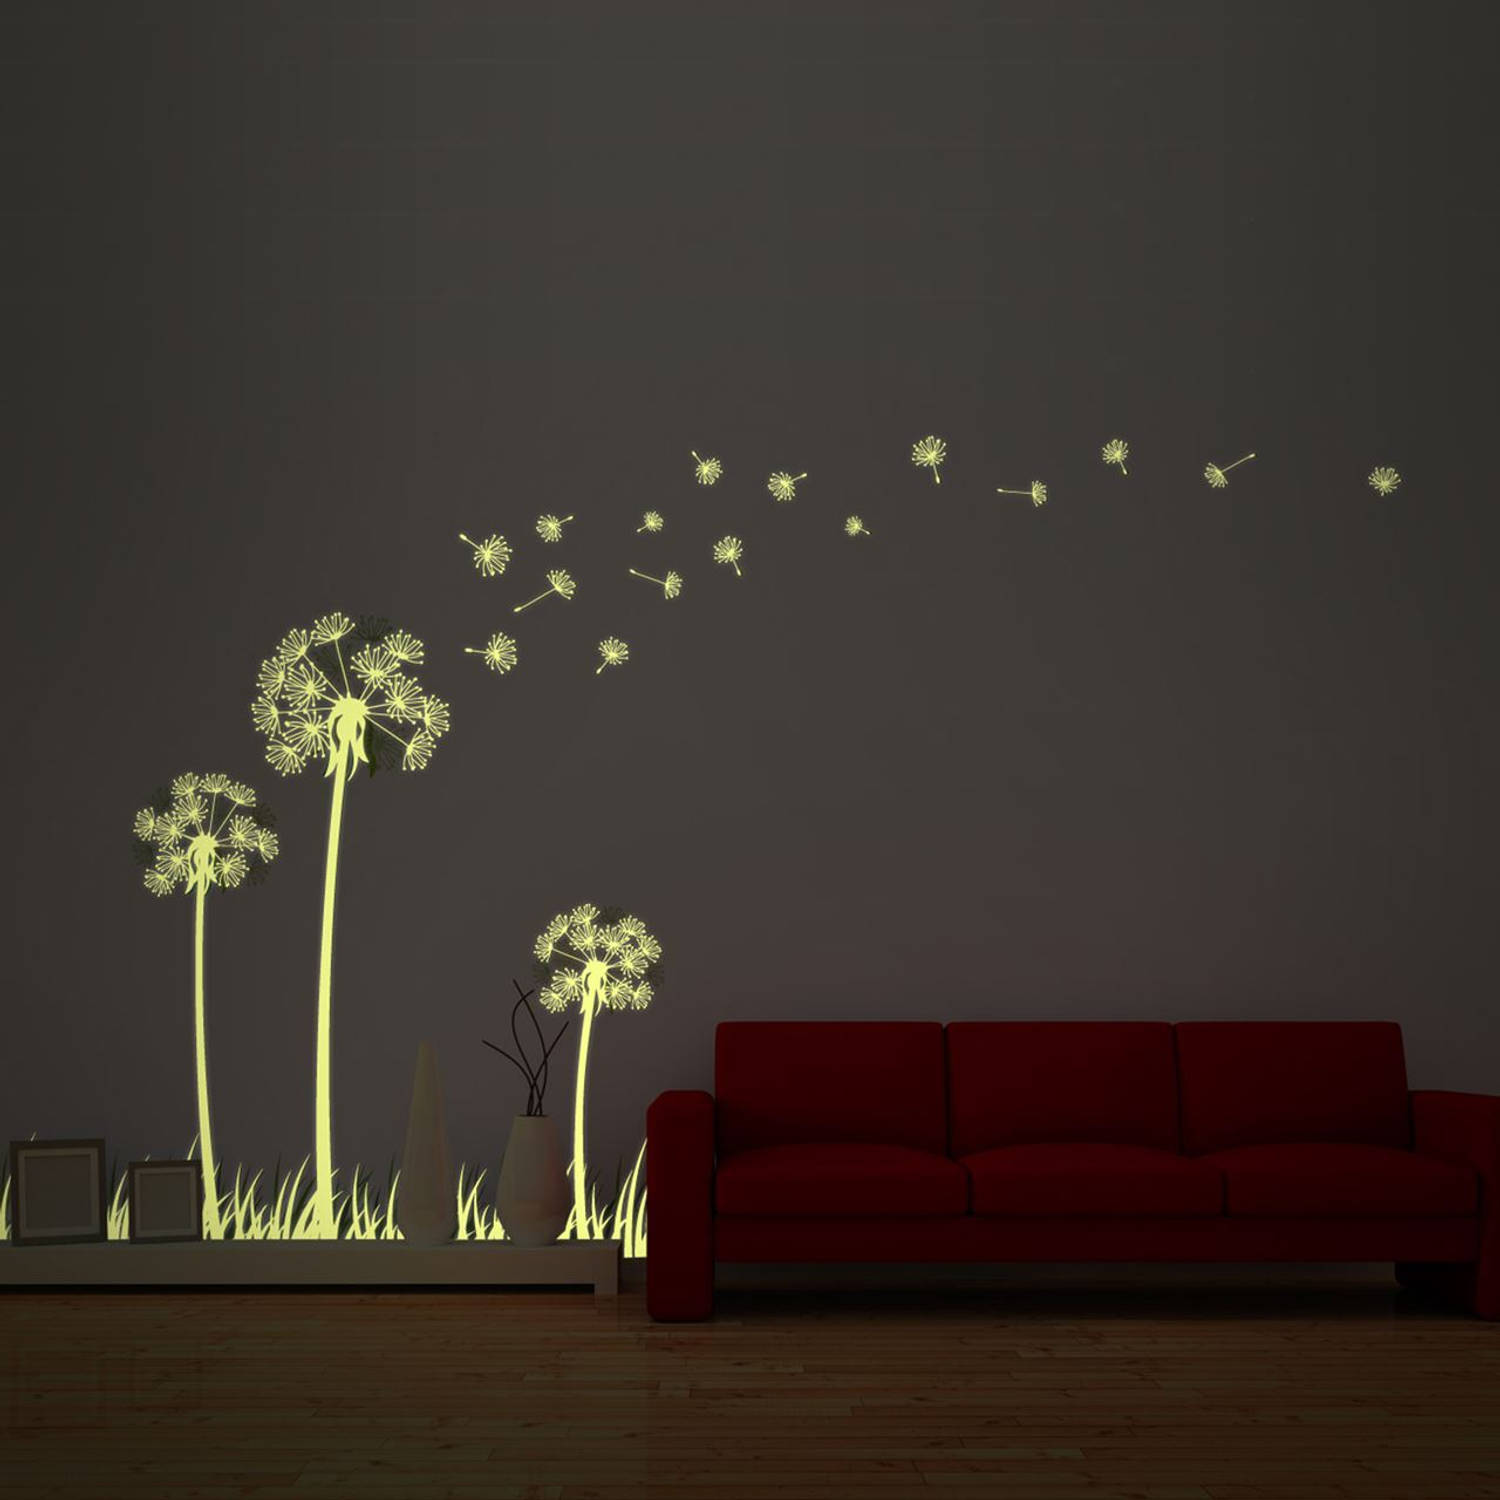 Walplus glow in the dark decoratie sticker - paardenbloem